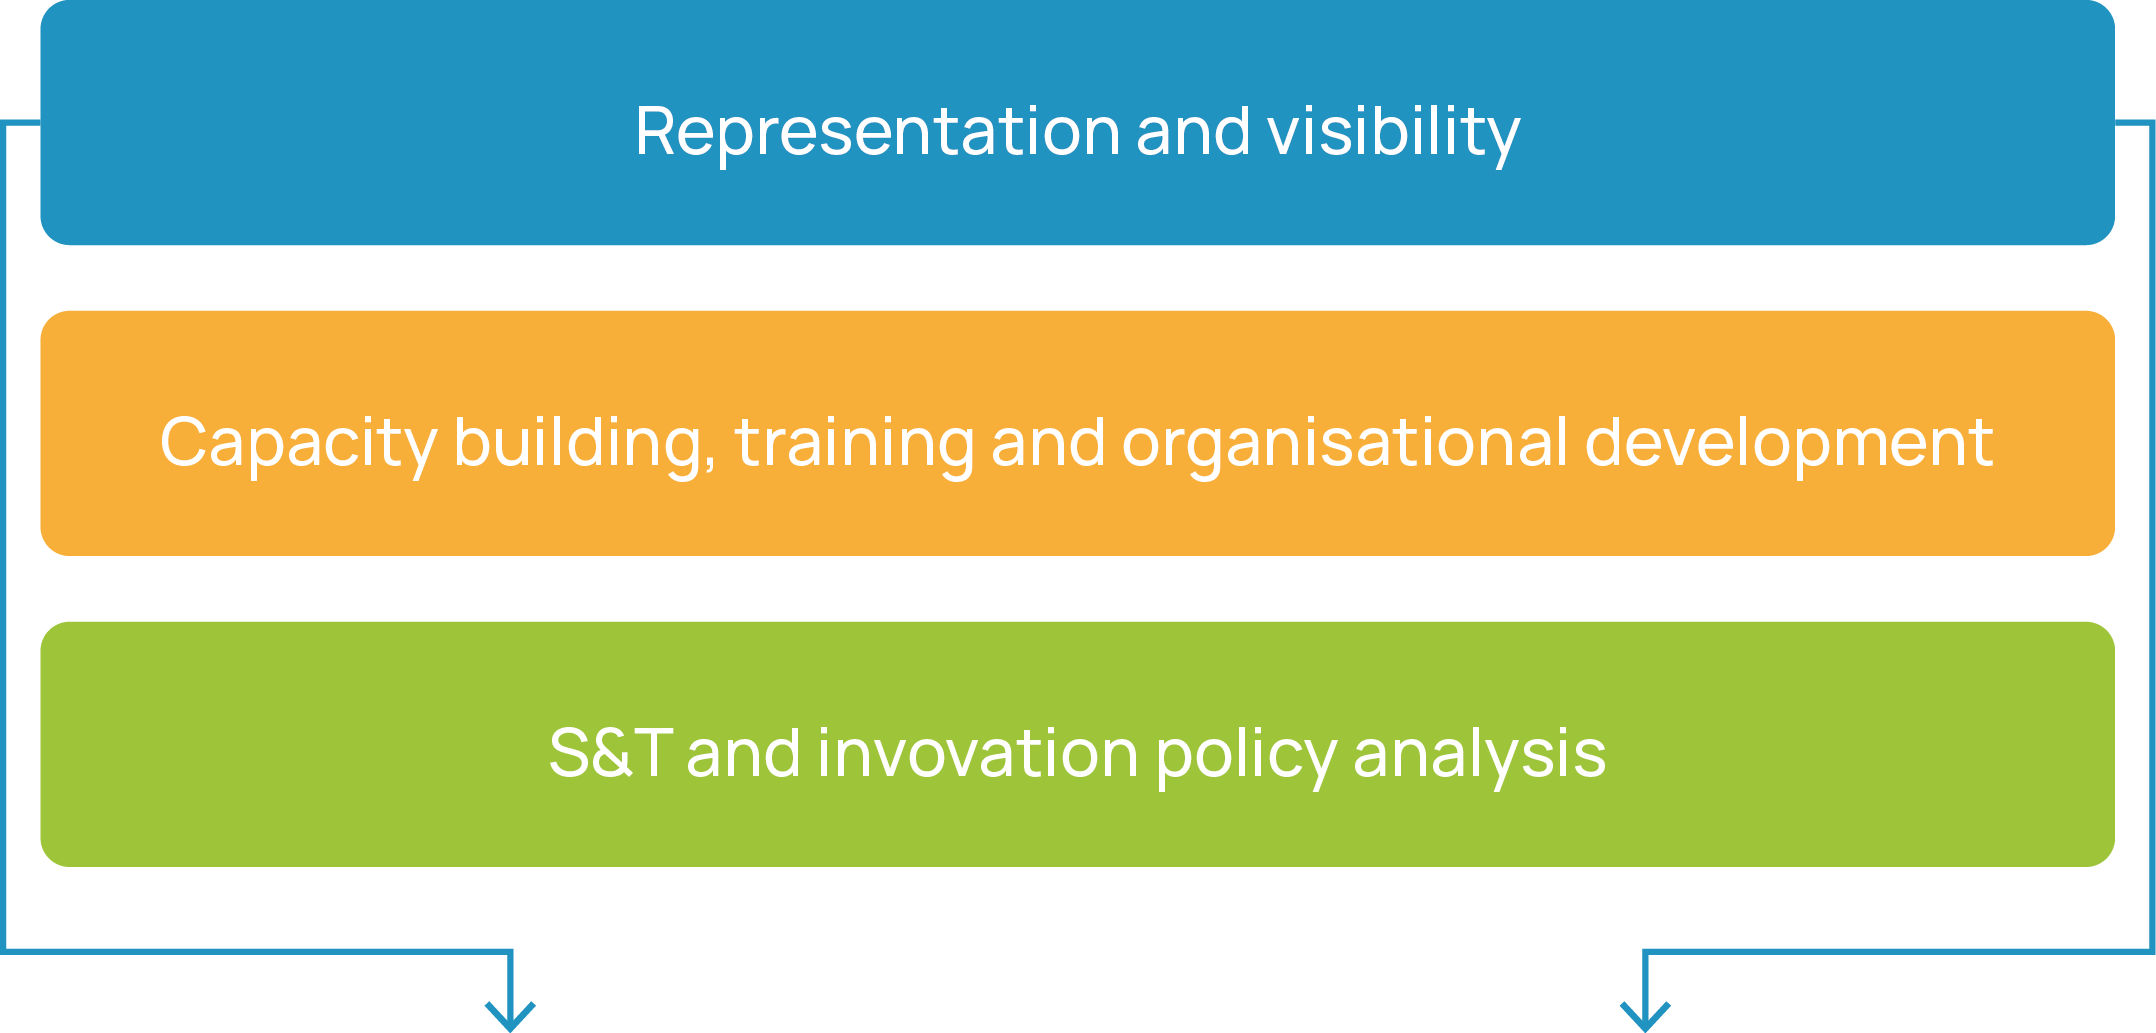 Vision-objectives-and-services